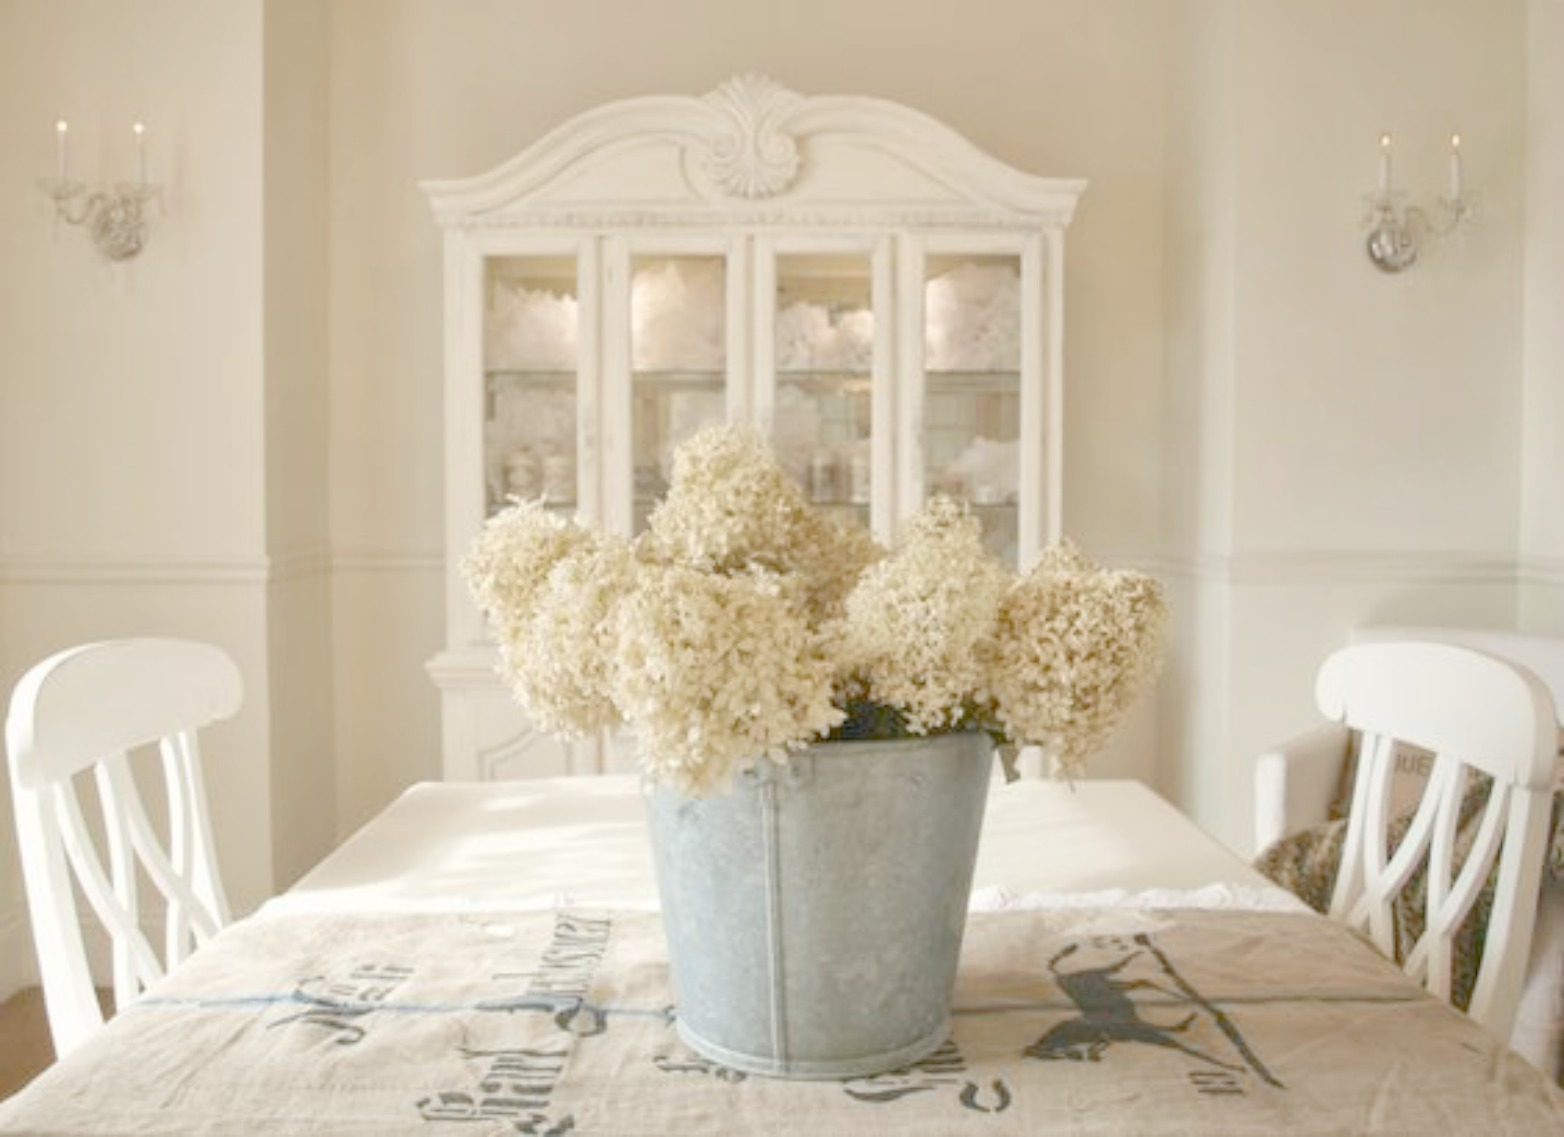 My #FrenchCountry white dining room with German grainsack, hydrangea, and romantic #NordicFrench style